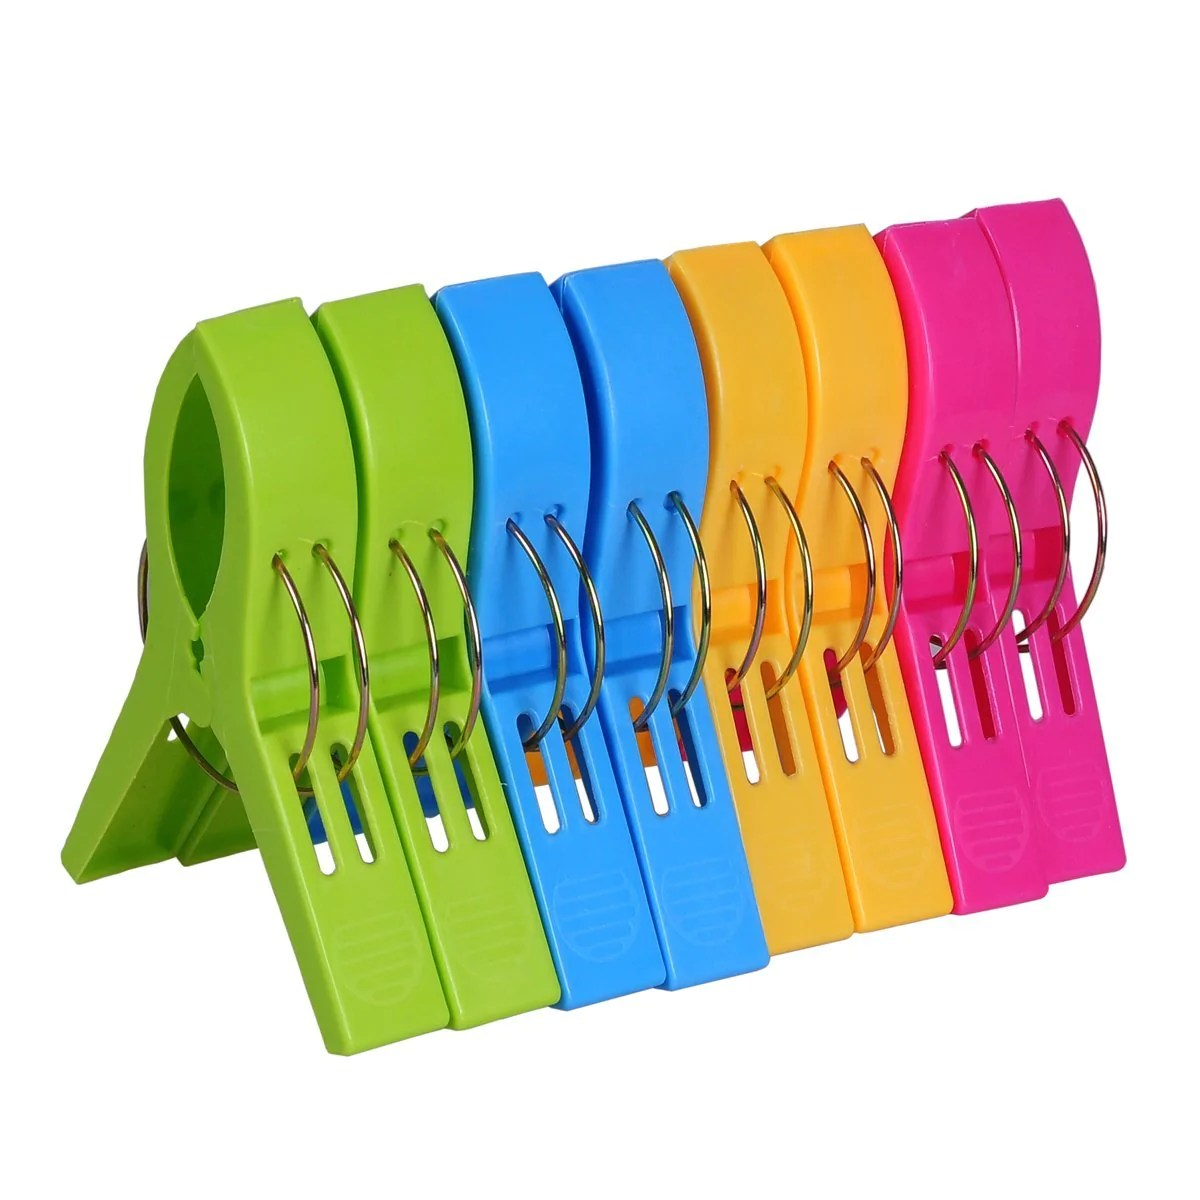 Beach Chair Clips Towel Clips 8 Pack Towel Holders For Beach Chair Or Pool